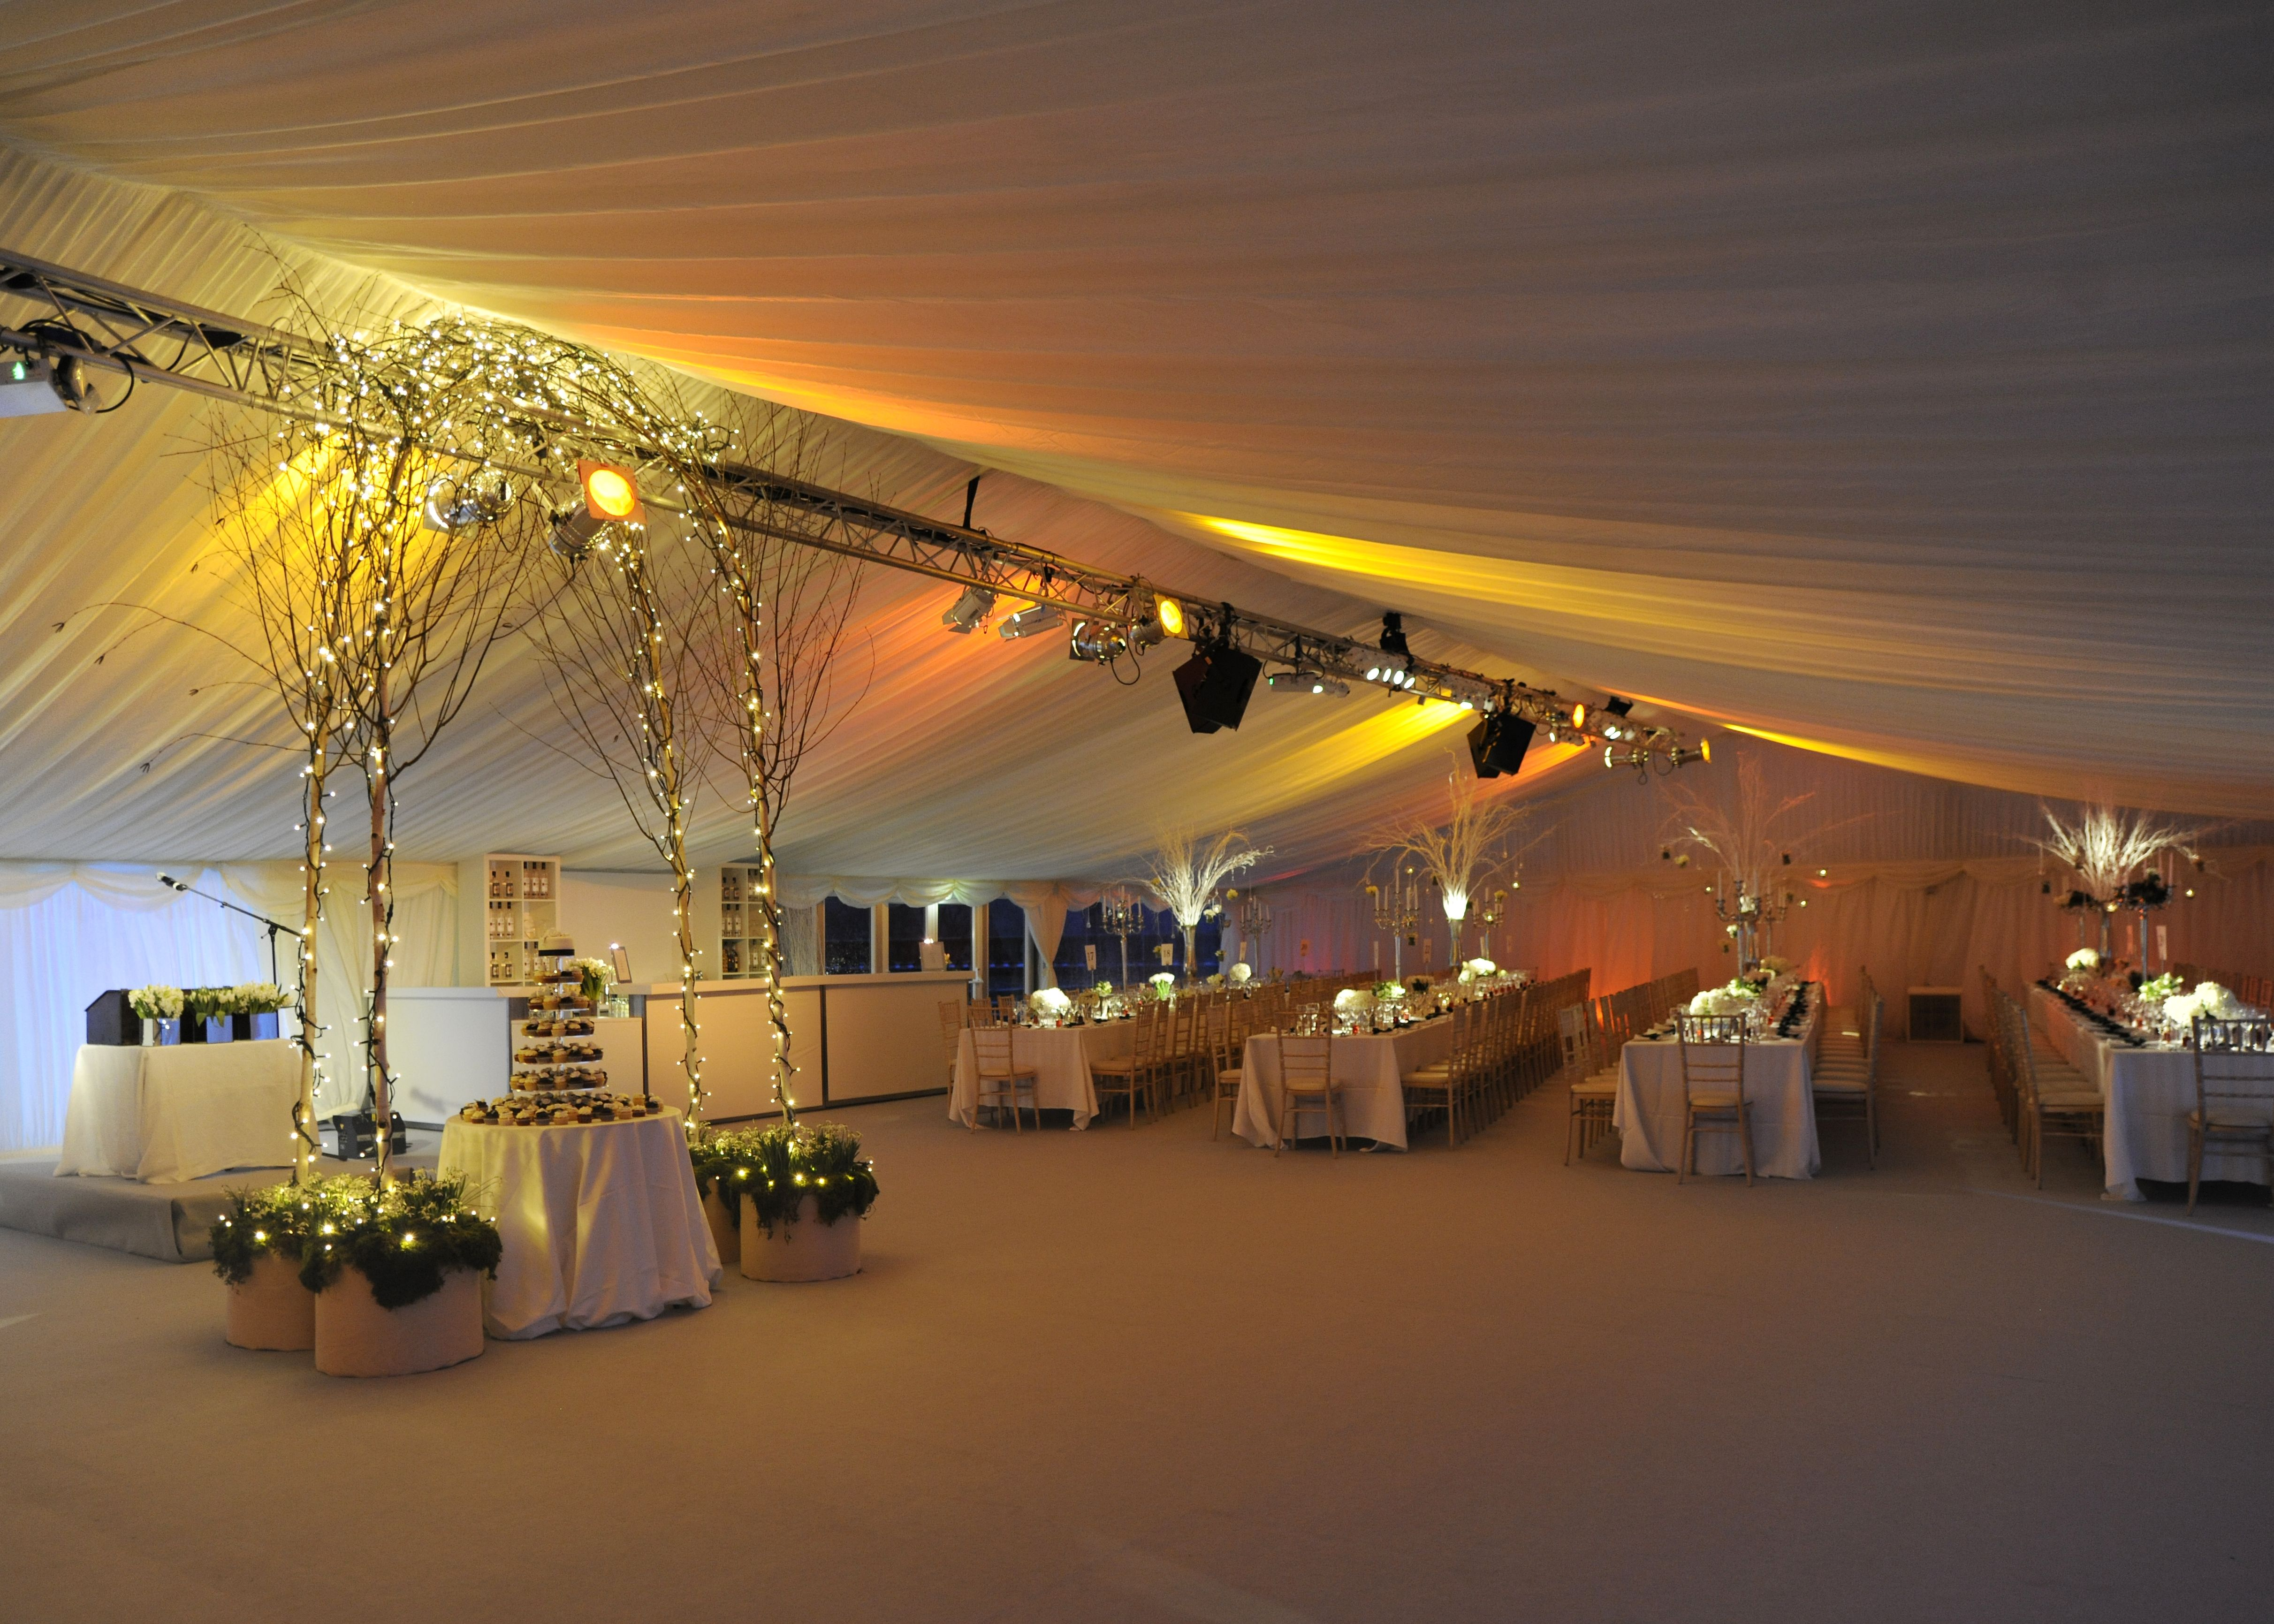 Neutral Carpet Linings And Linens In A Stunning Wedding Marquee Bestintentweddings Neutral Color Scheme Marquee Wedding Marquee